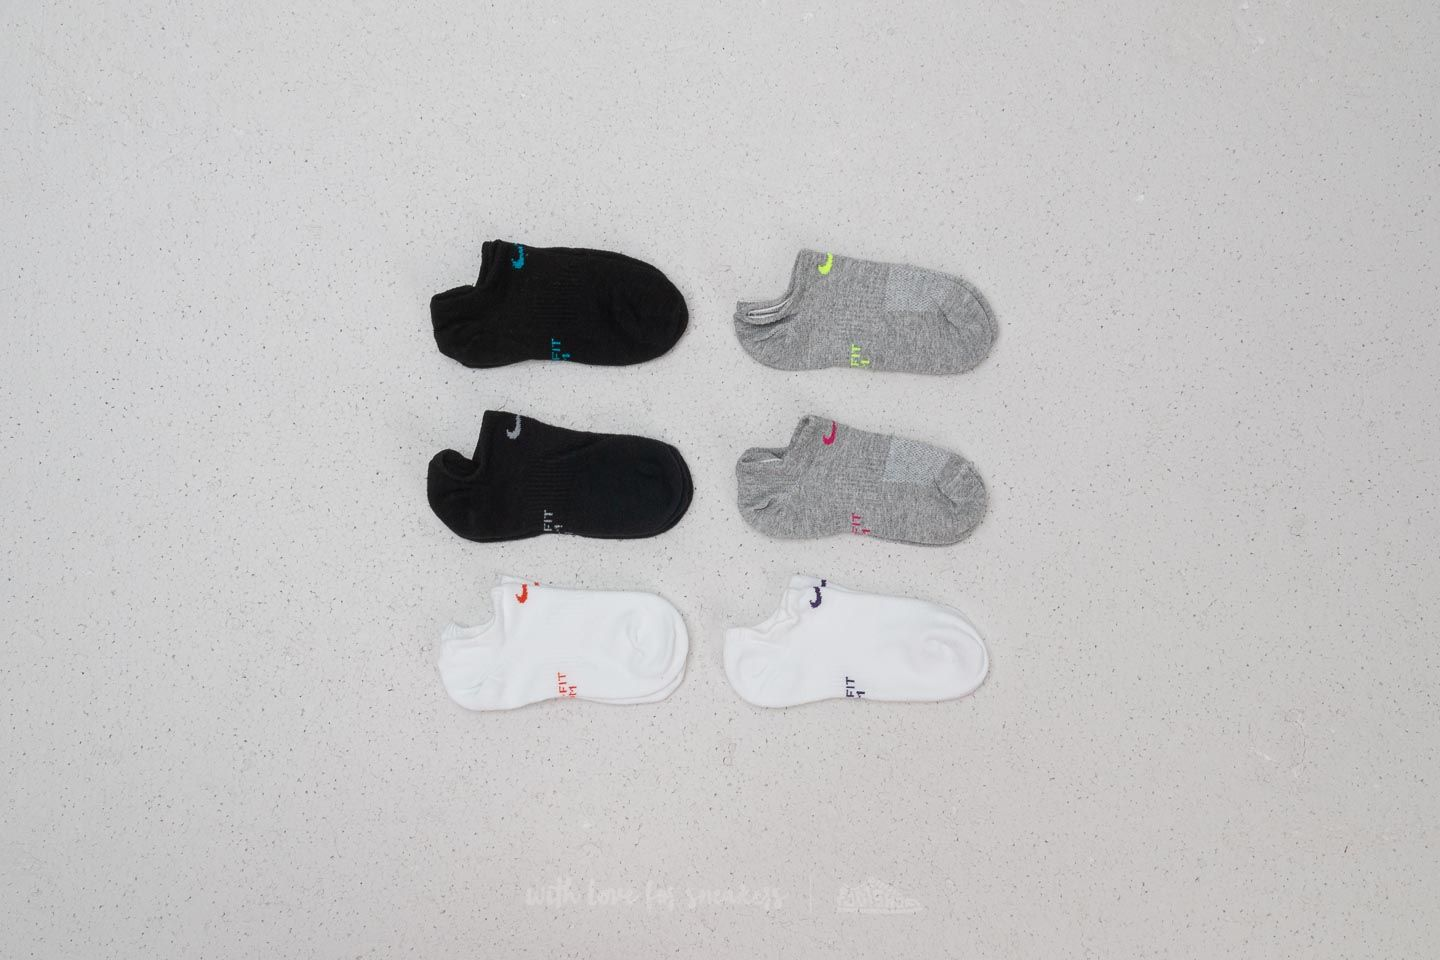 Nike 6 Pack Performance Lightweight Socks Black/ White/ Grey